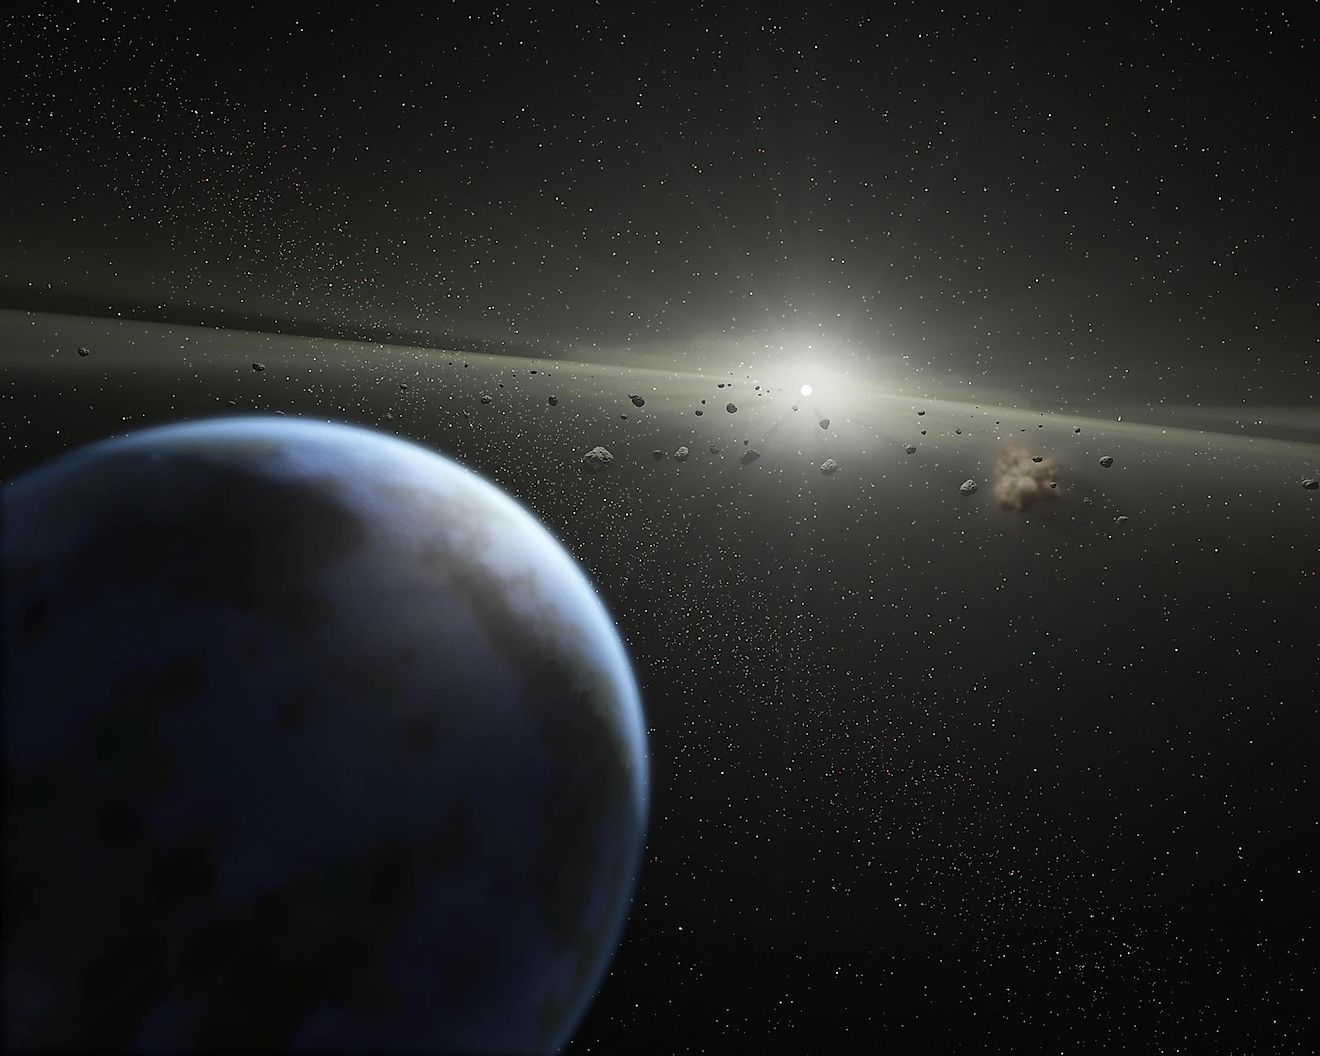 An Artist's Representation Of An Asteroid Belt In Orbit Around A Star.